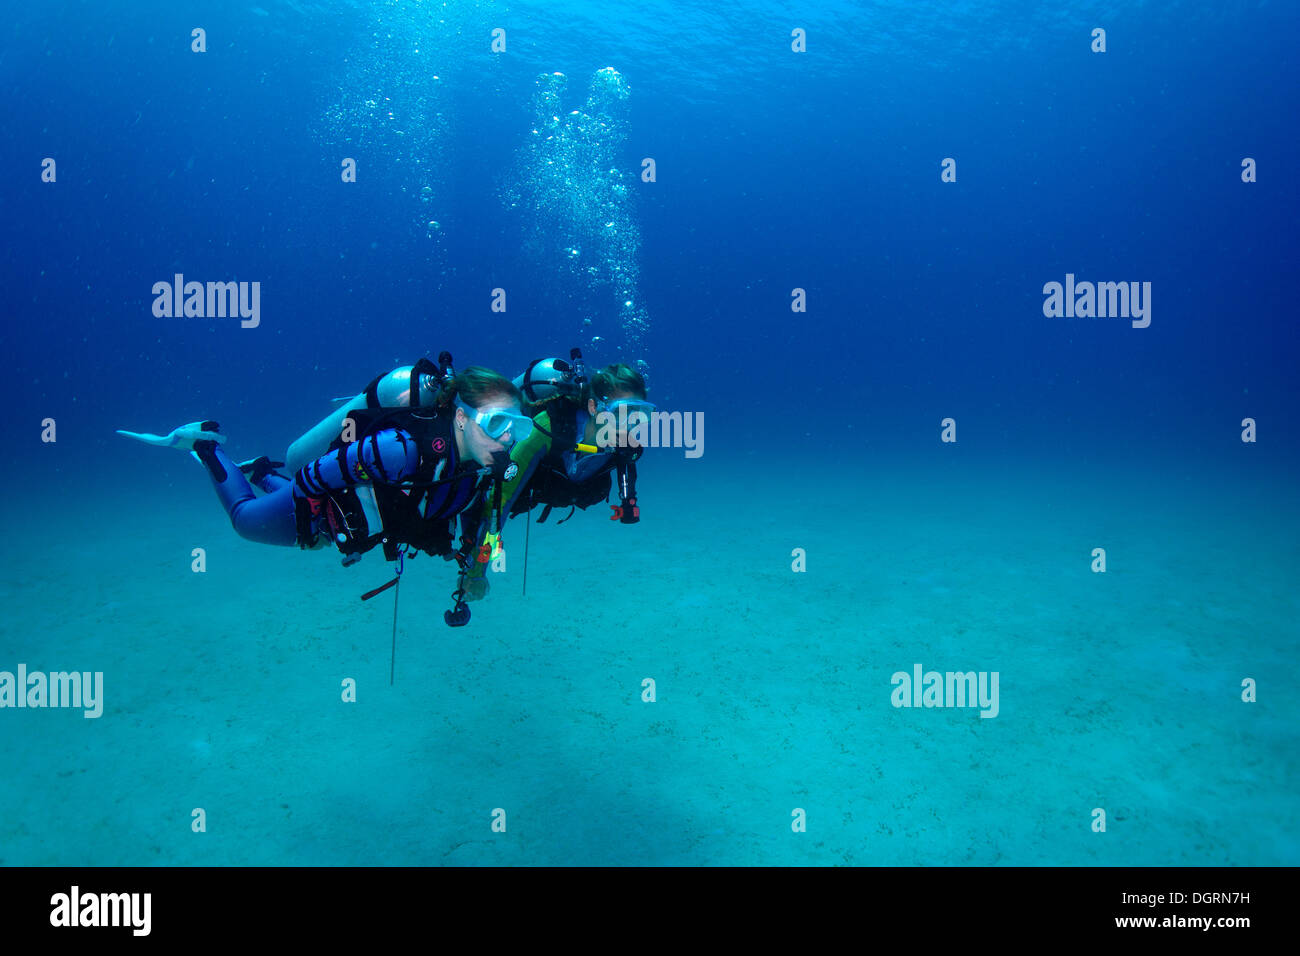 Divers under water, Mimaropa, Mulaong, South China Sea, Philippines, Asia, Binalayan, -, Philippines - Stock Image